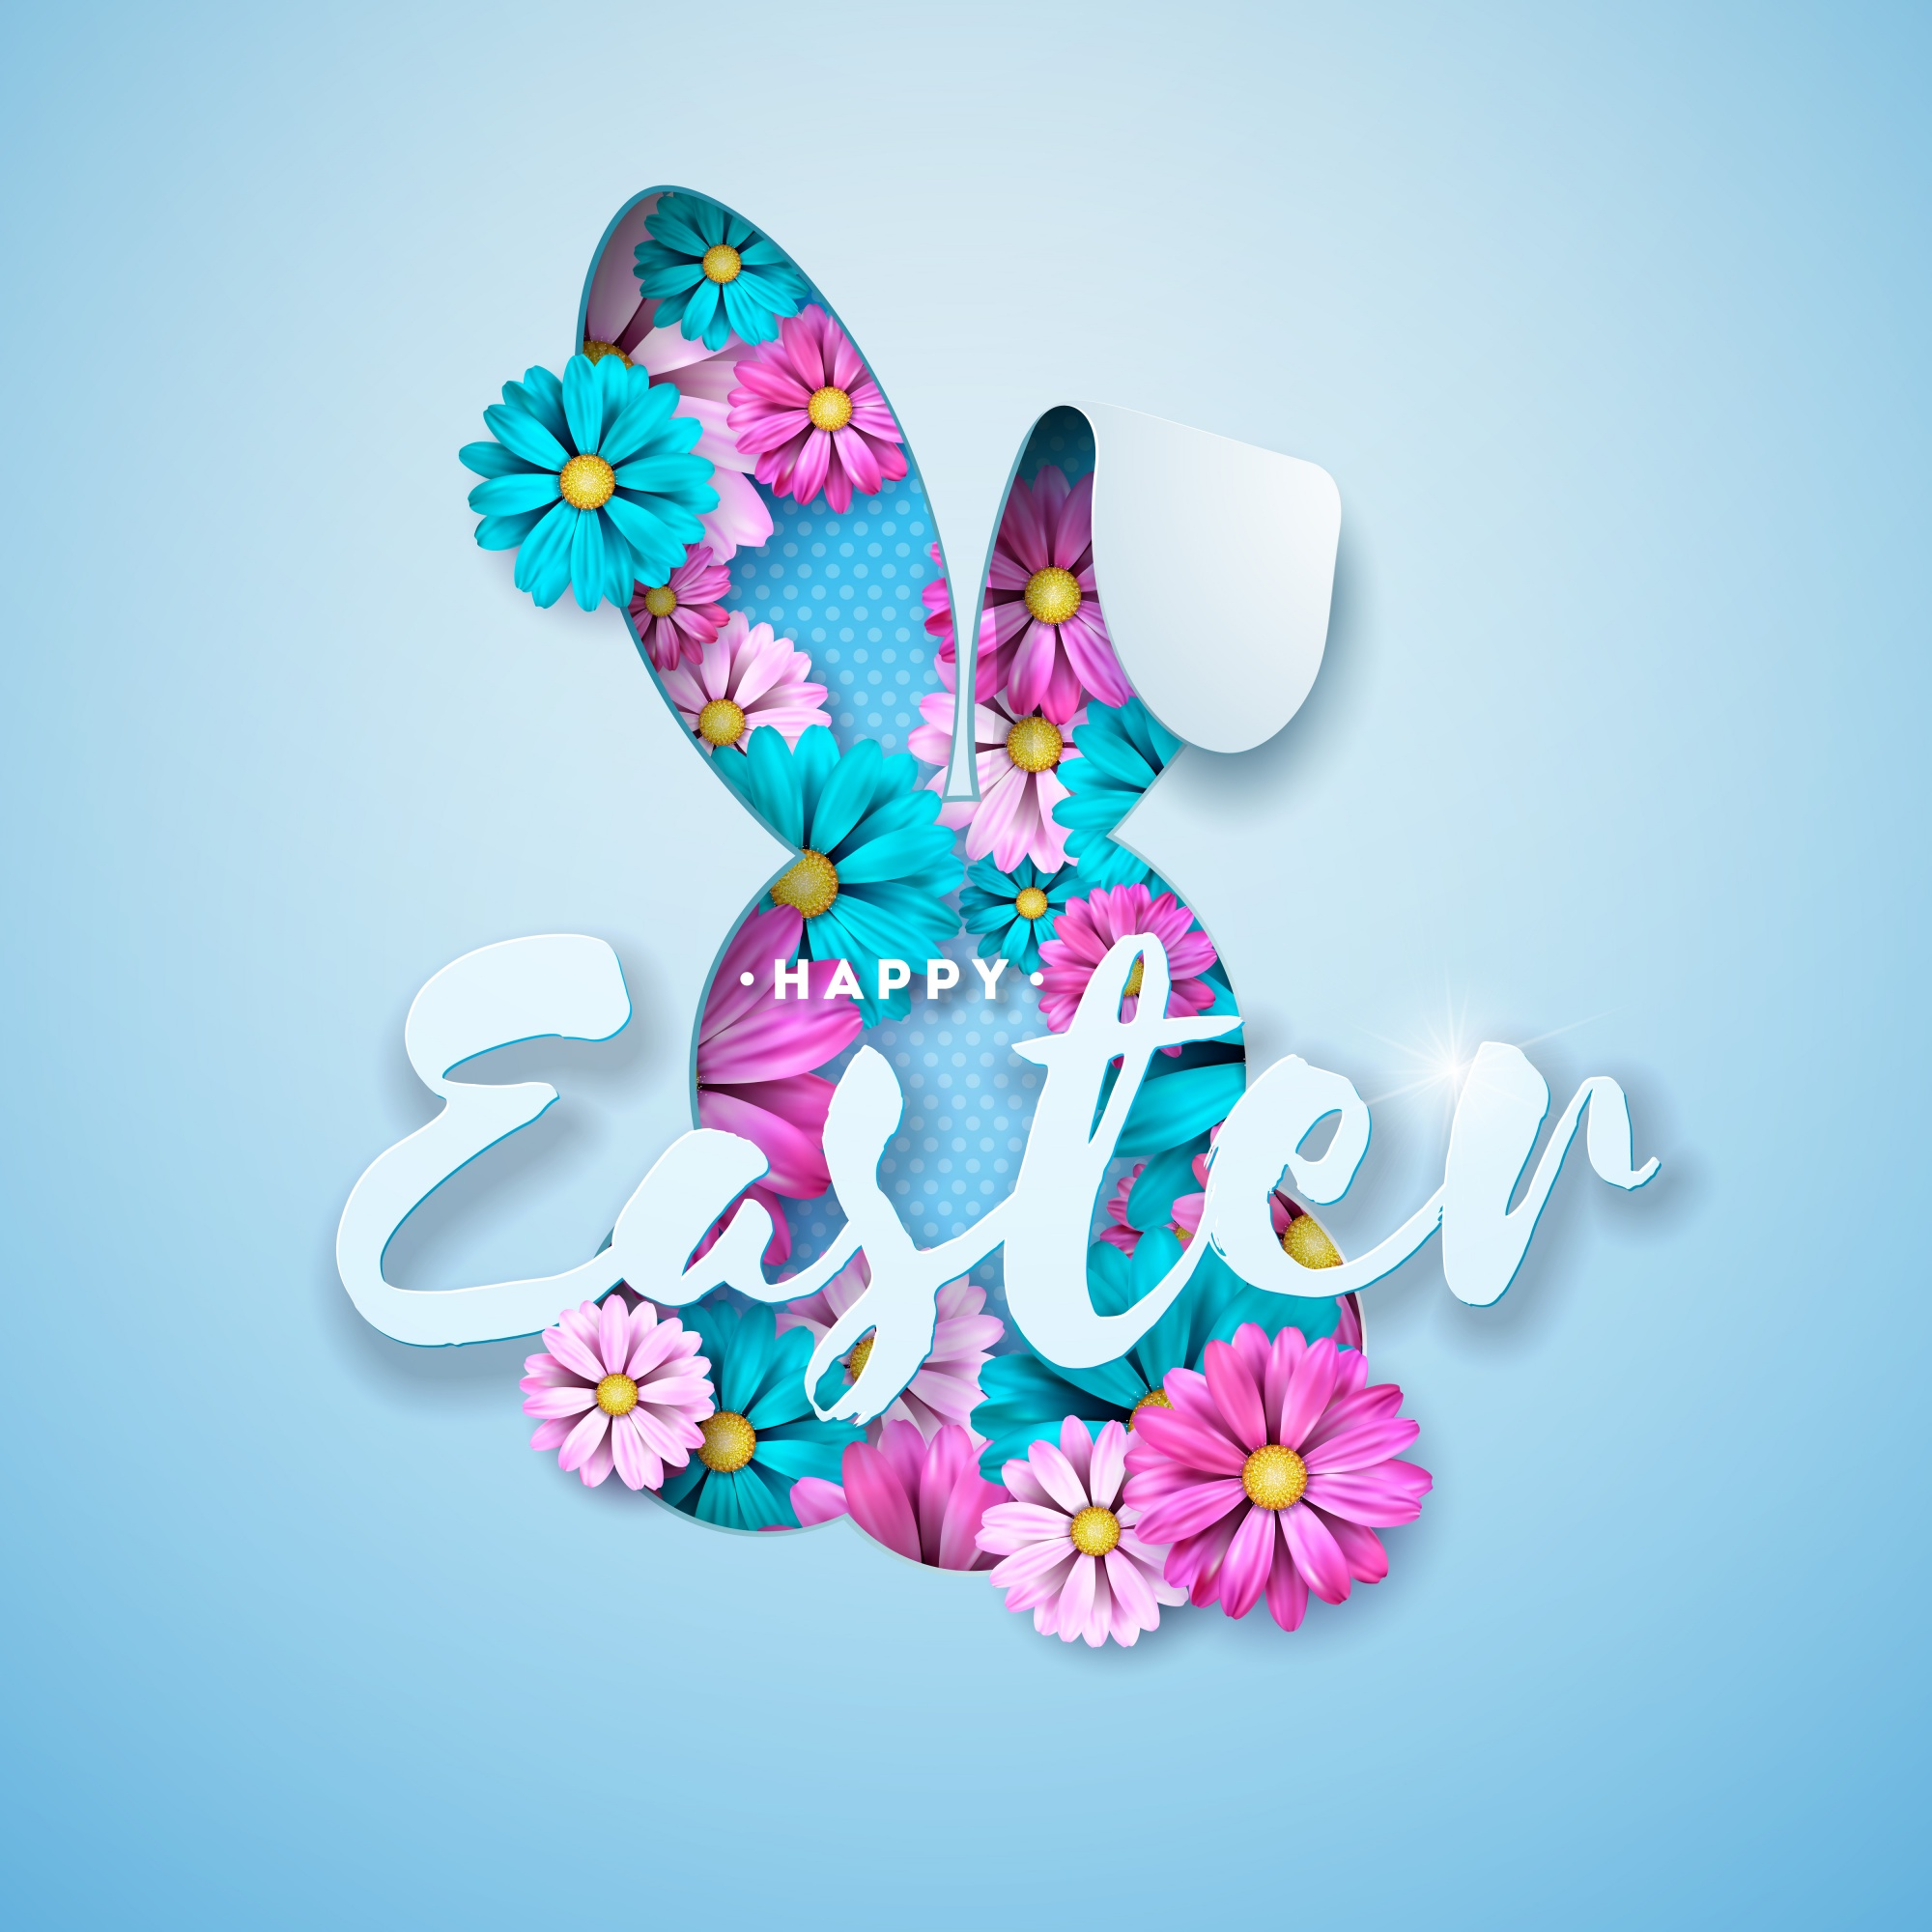 Vector Illustration of Happy Easter Holiday with Spring Flowers